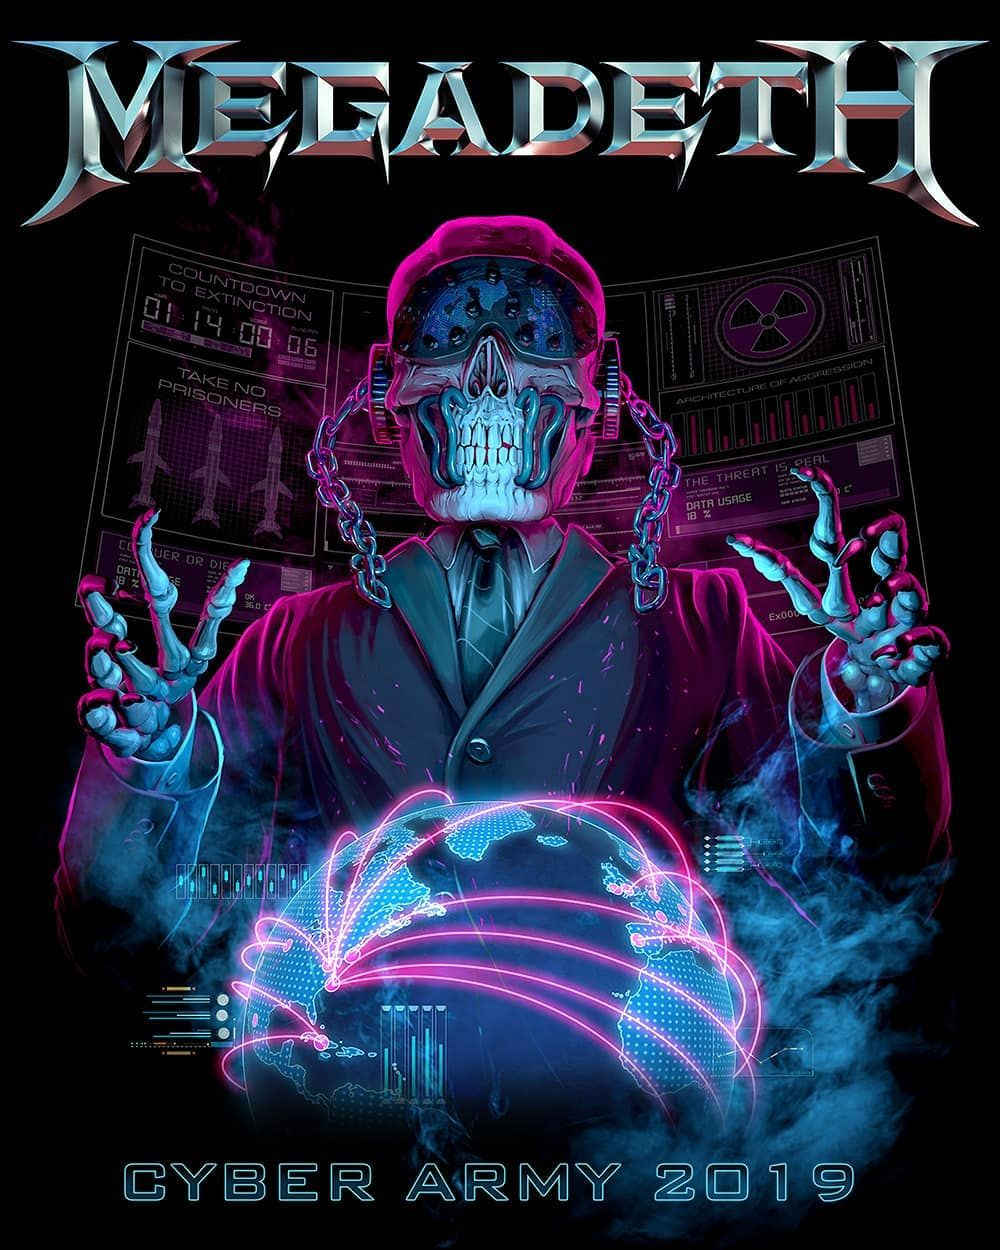 Megadeth With Images Heavy Metal Music Megadeath Metal Artwork